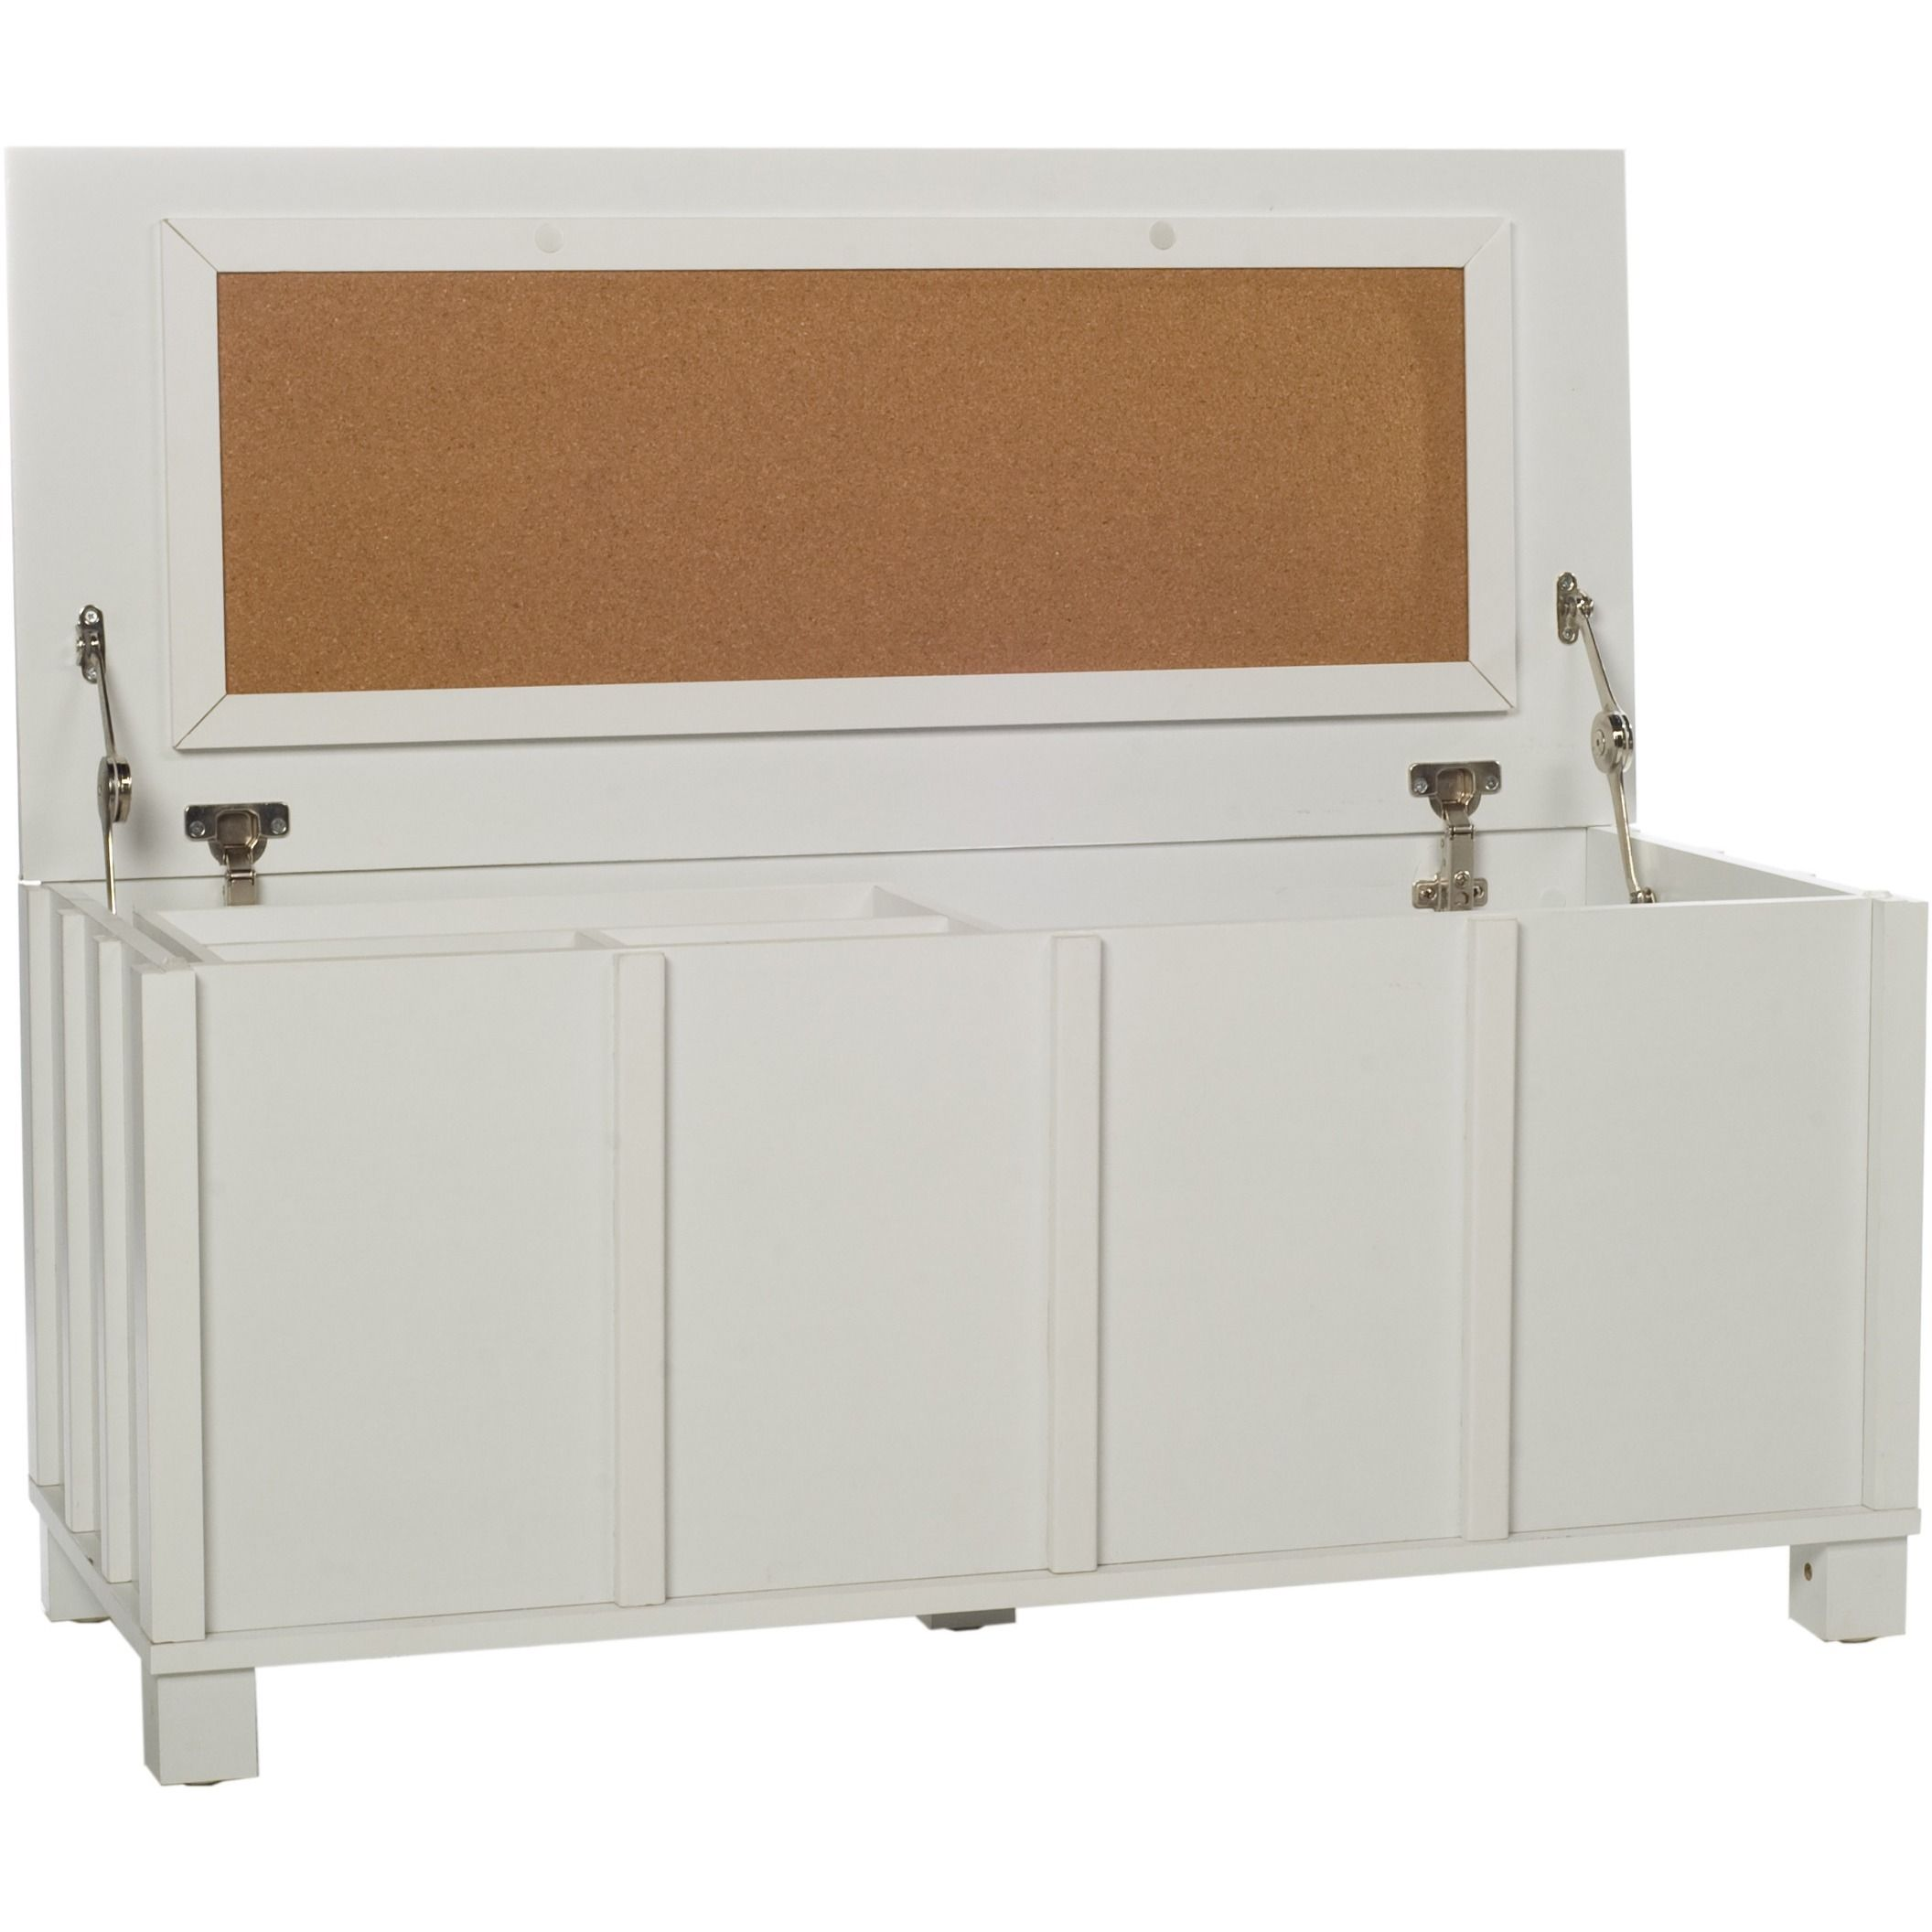 Comfort Products Home Storage Cork Filing Trunk with Organizer Tray ...